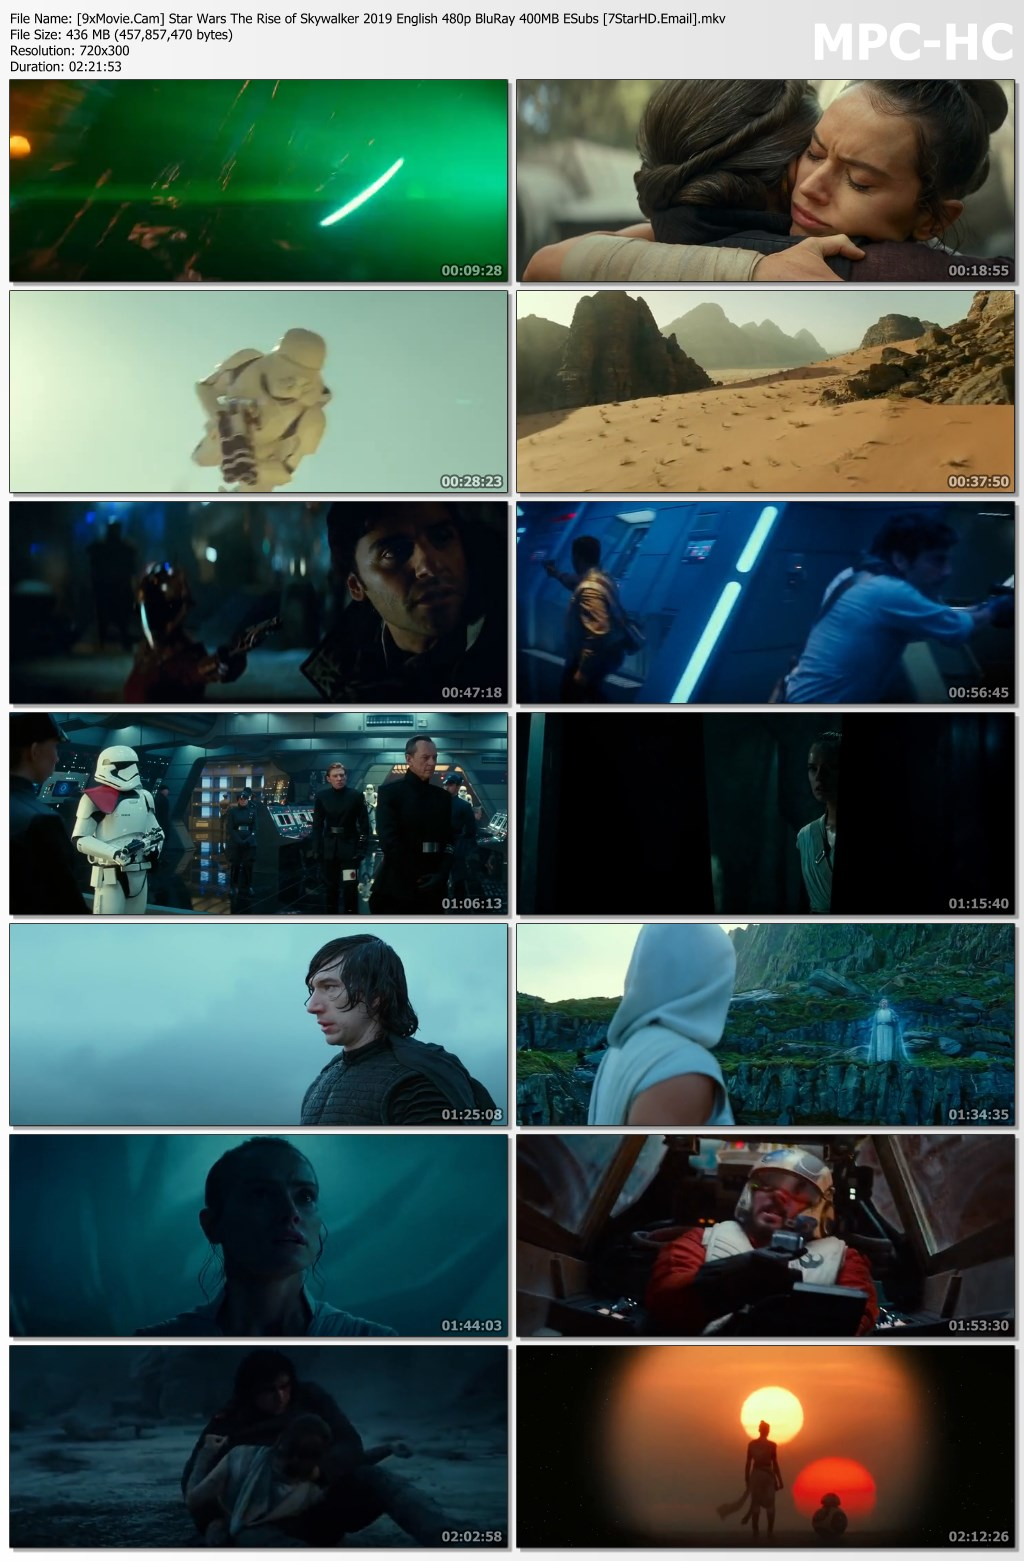 Star Wars The Rise of Skywalker 2019 English 480p BluRay x264 400MB ESubs